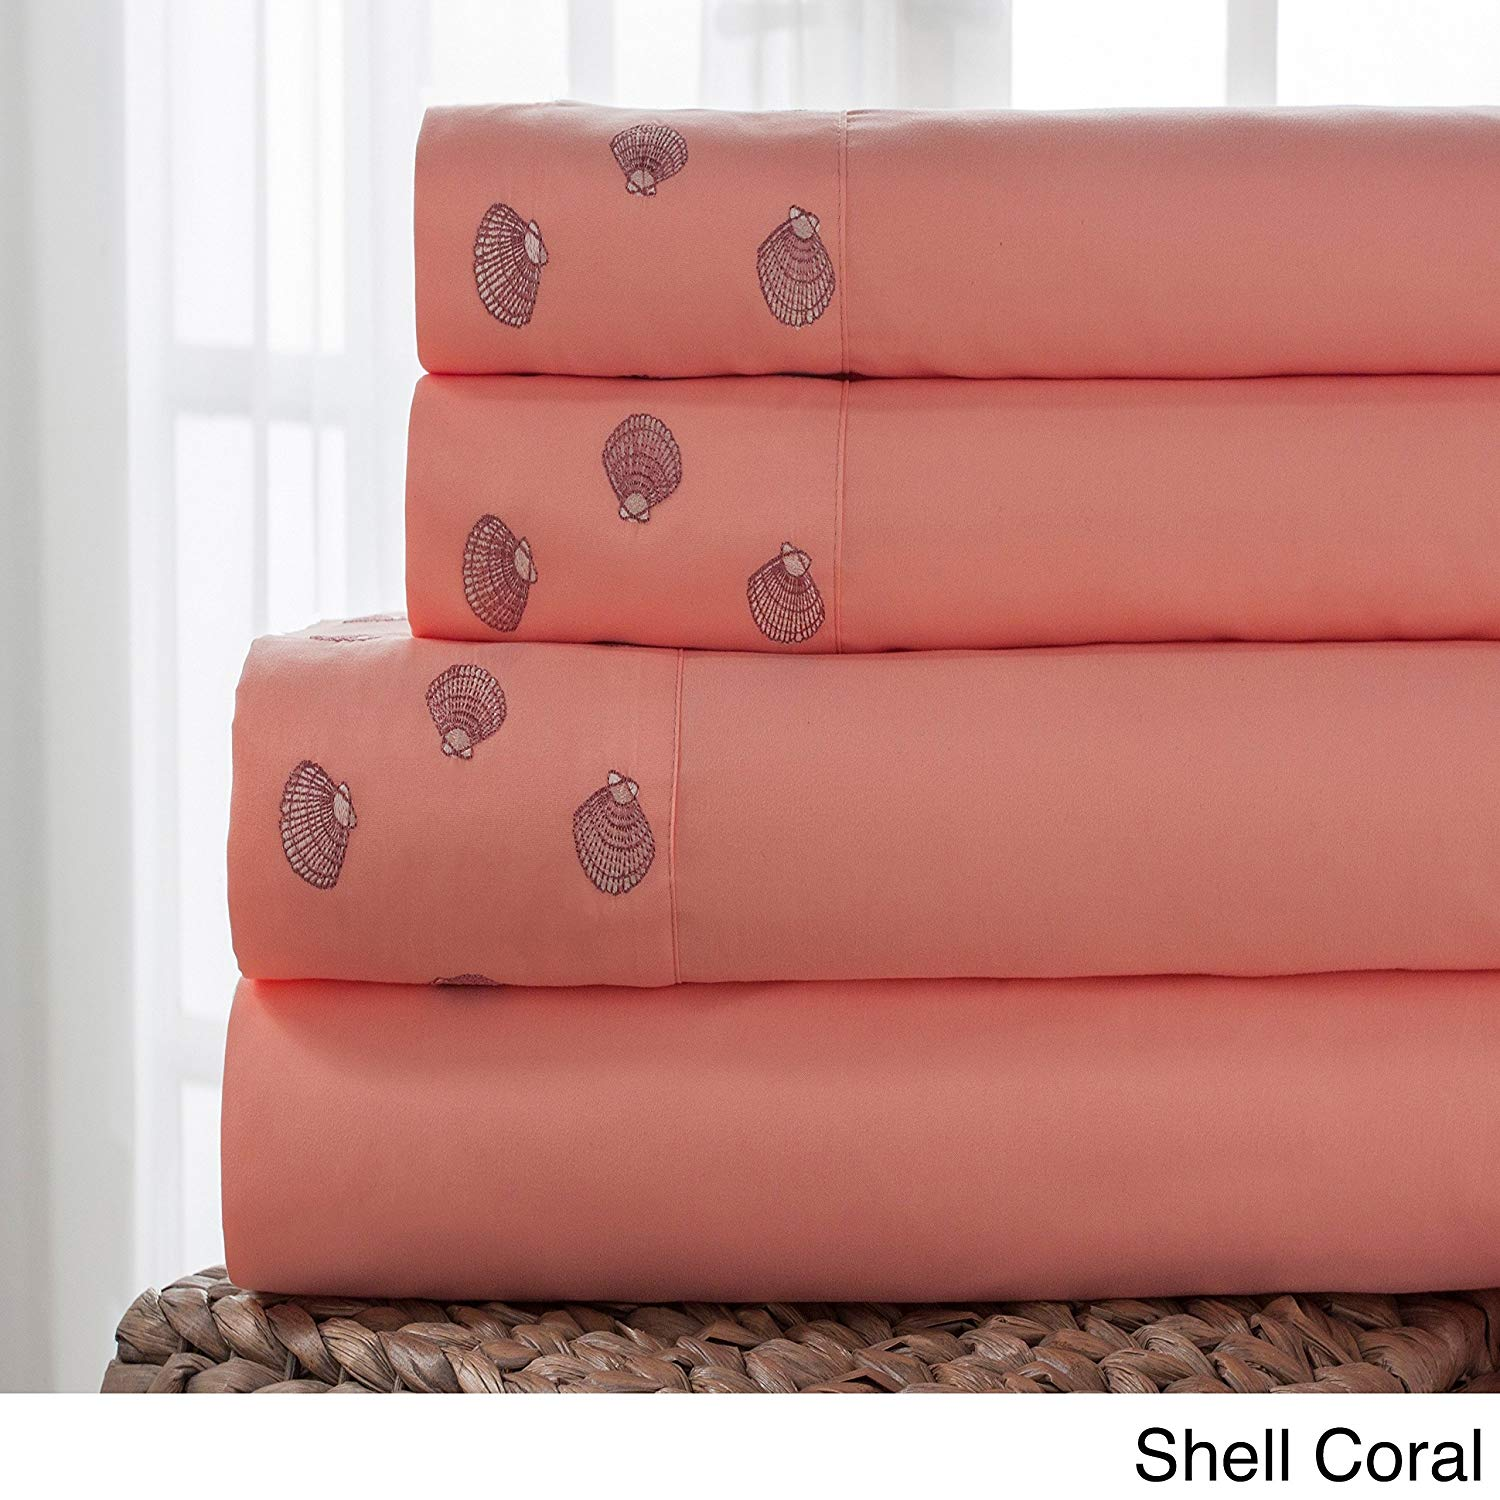 CA 4 Piece Off White Pink Coral Sea Shells Sheet Set Queen Sized, Pretty Seashells Bedding Coastal Themed Nautical Sea Ocean Beach Shell Pattern Embroidered, Microfiber Polyester